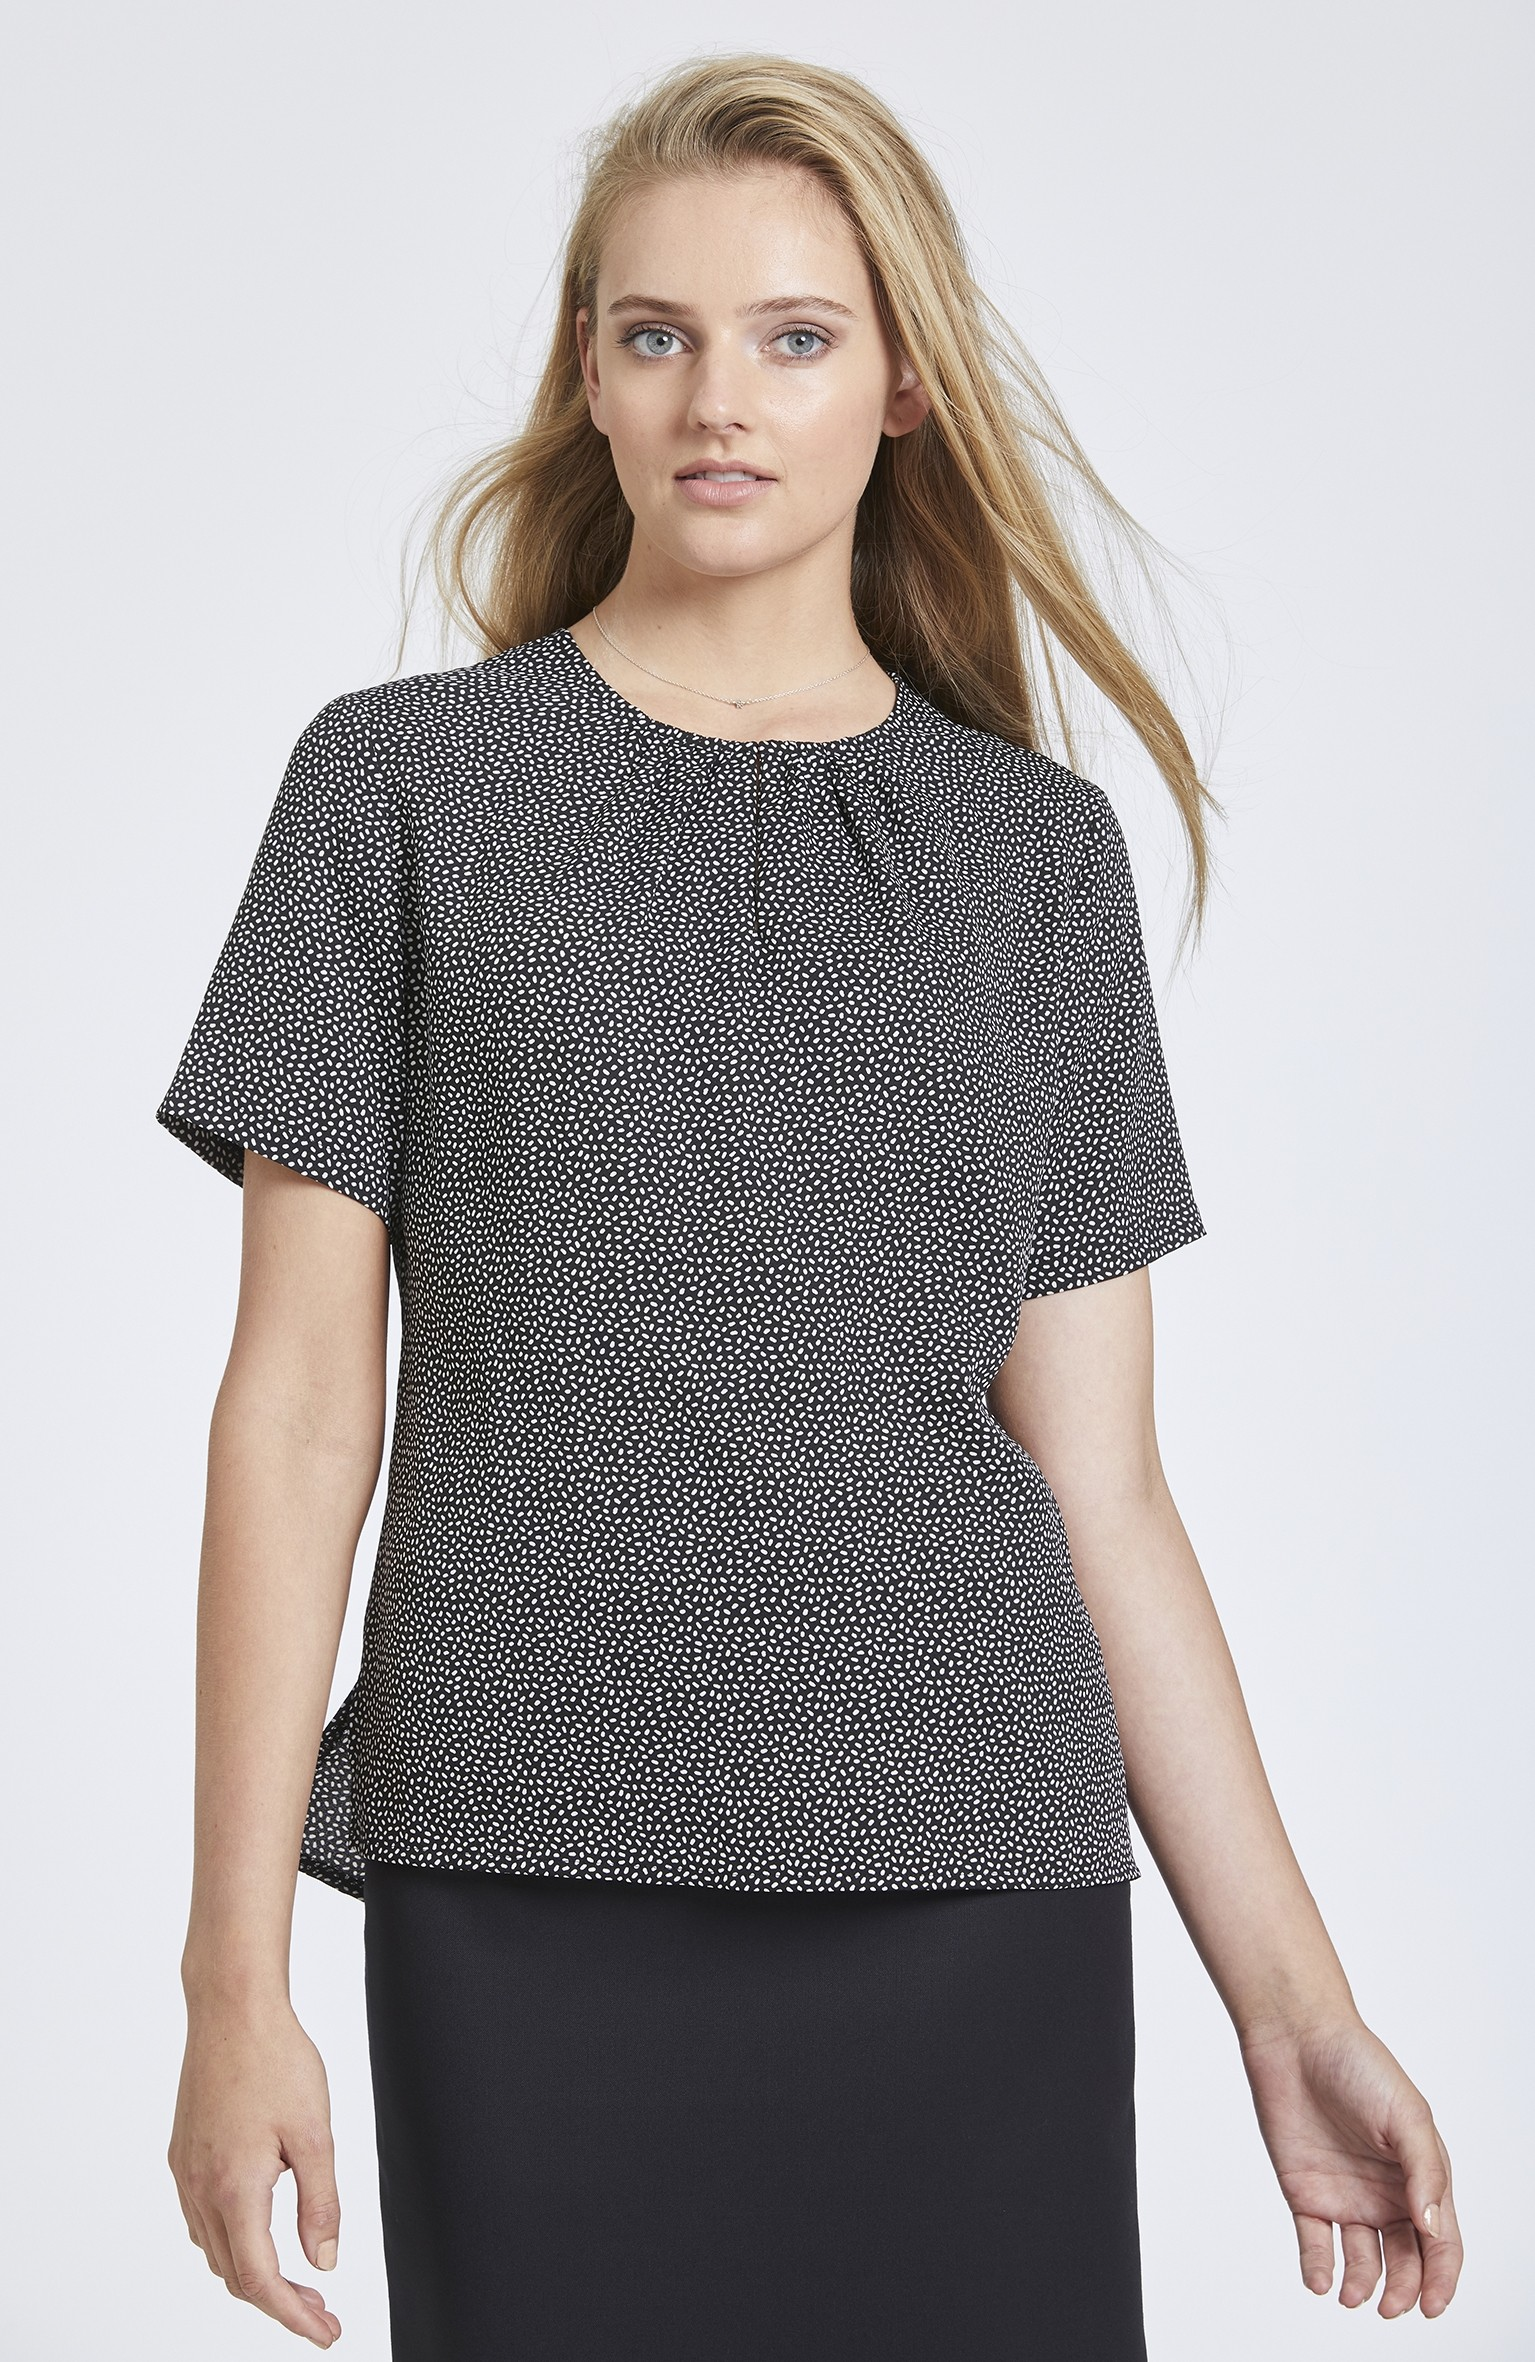 Speckle Print Collarless Top with Gathered Neckline